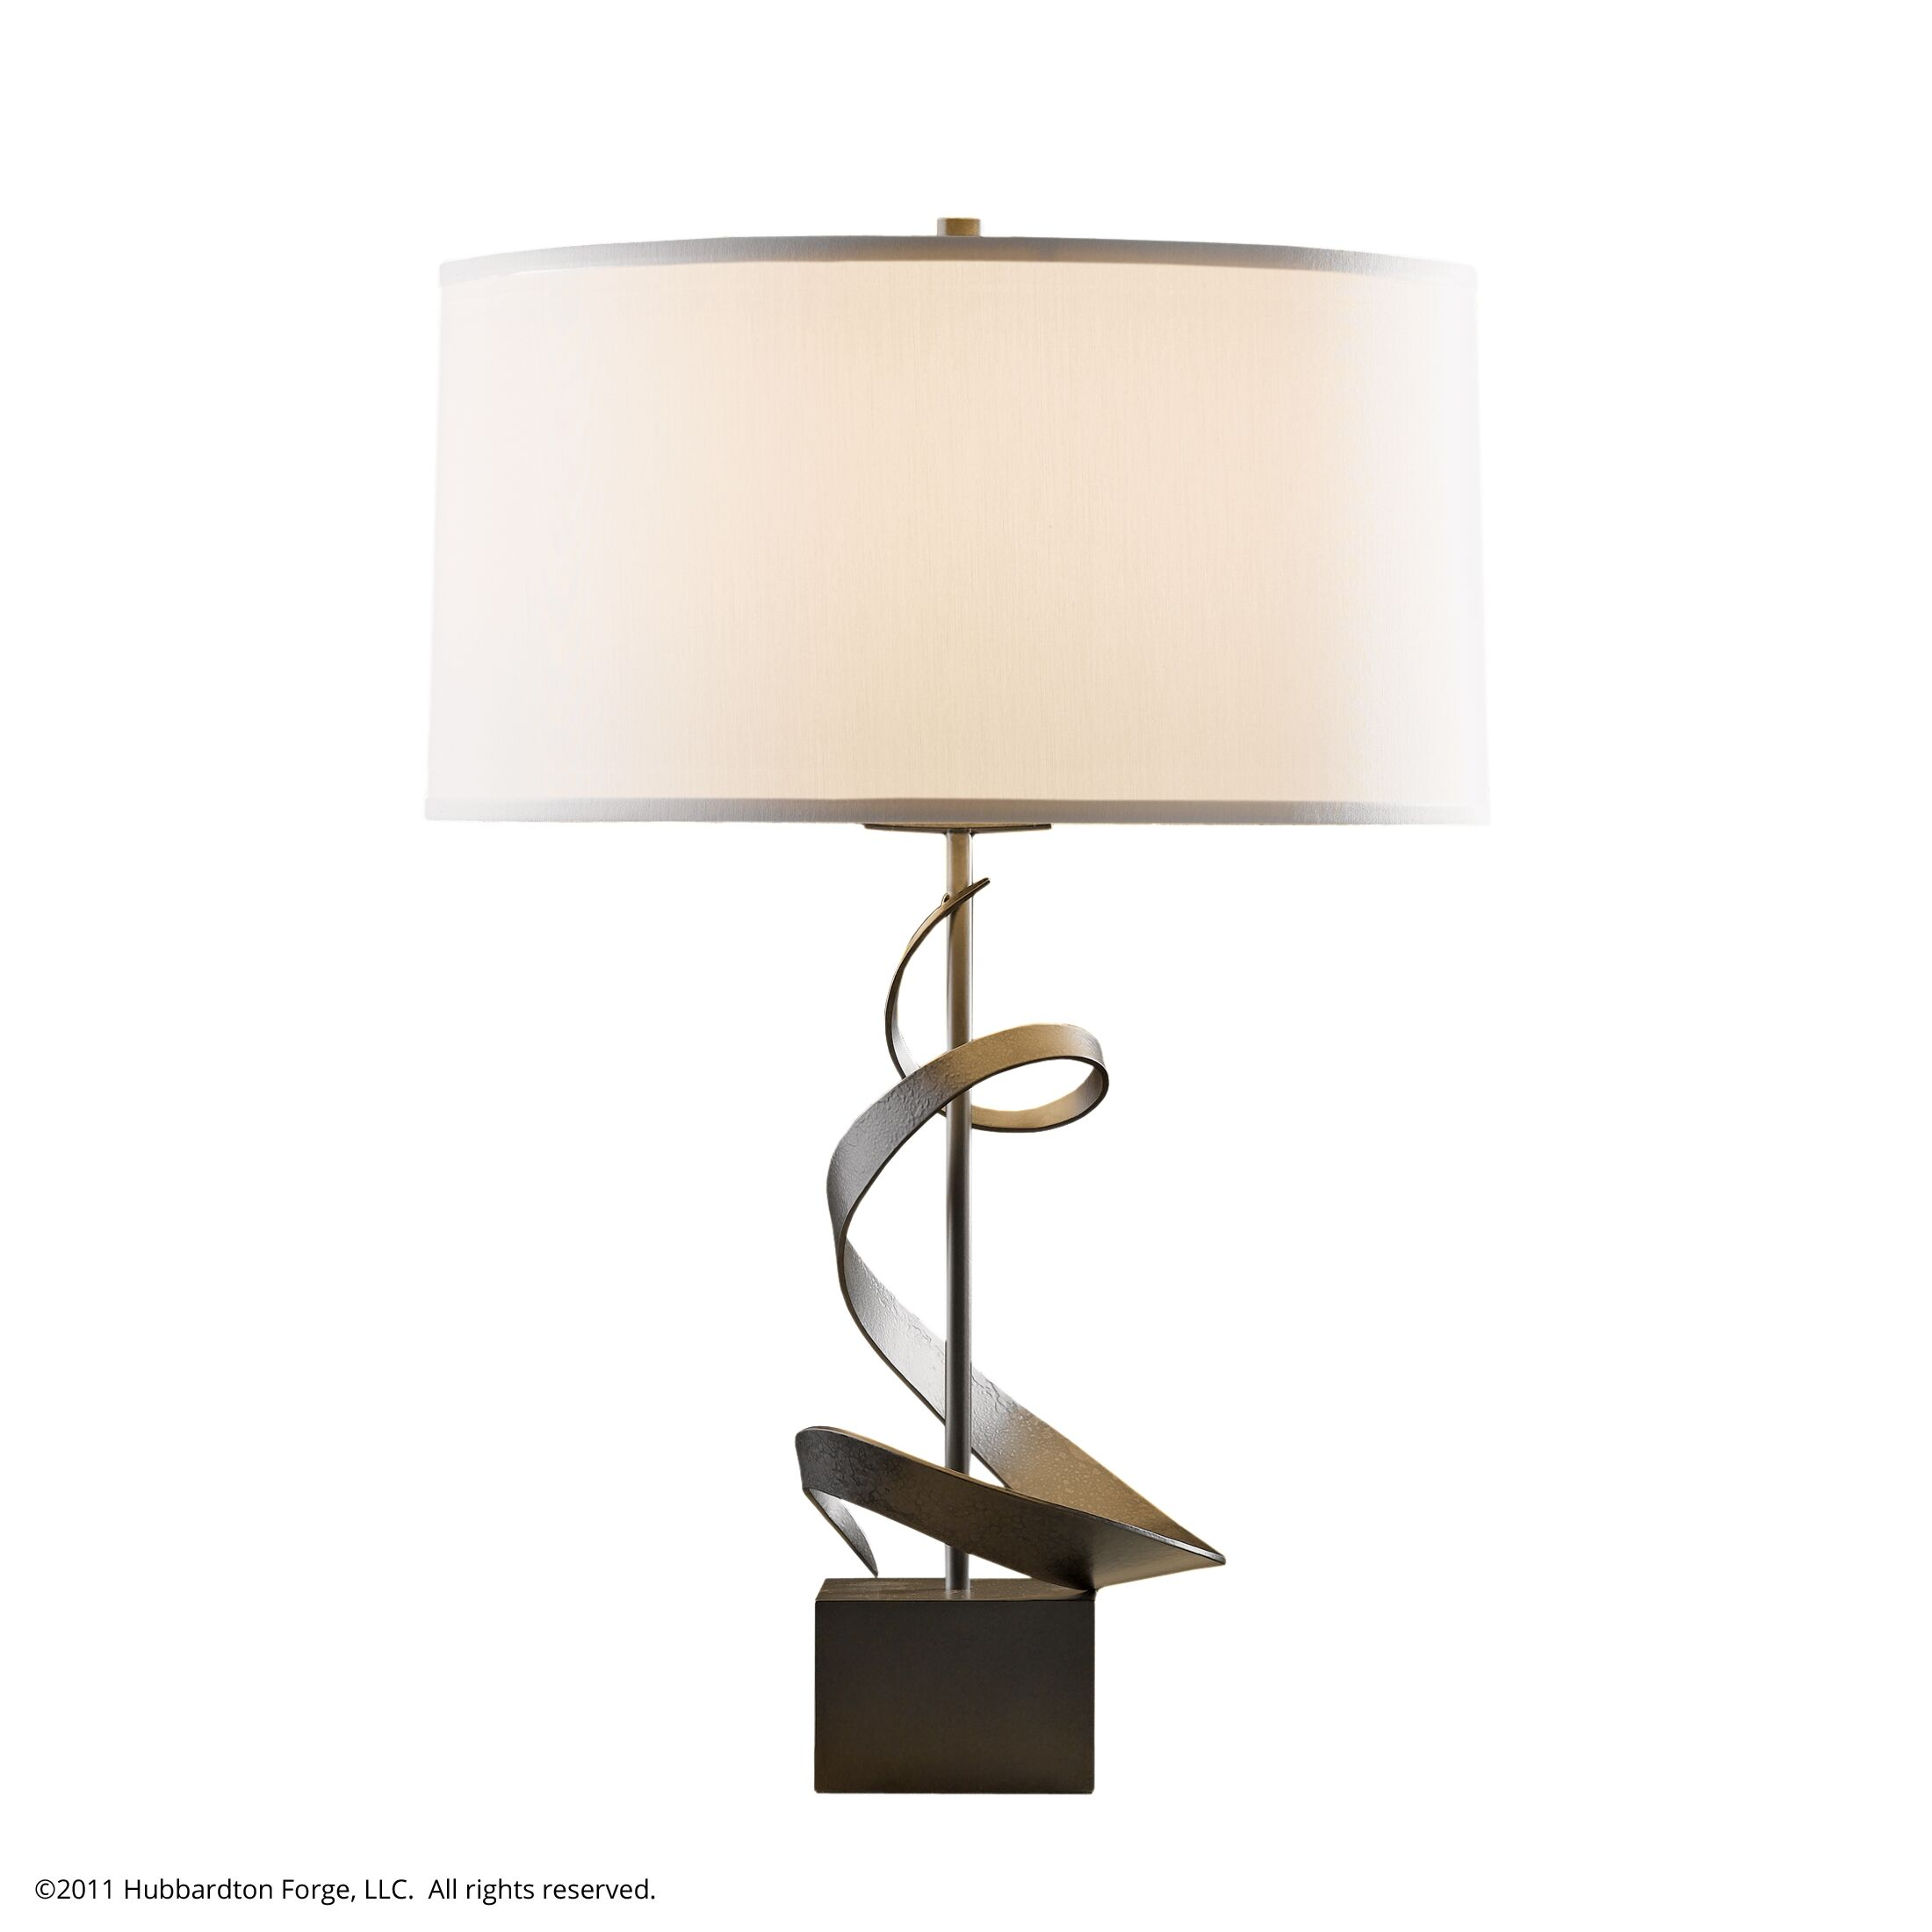 Thumbnail for Gallery Spiral Table Lamp